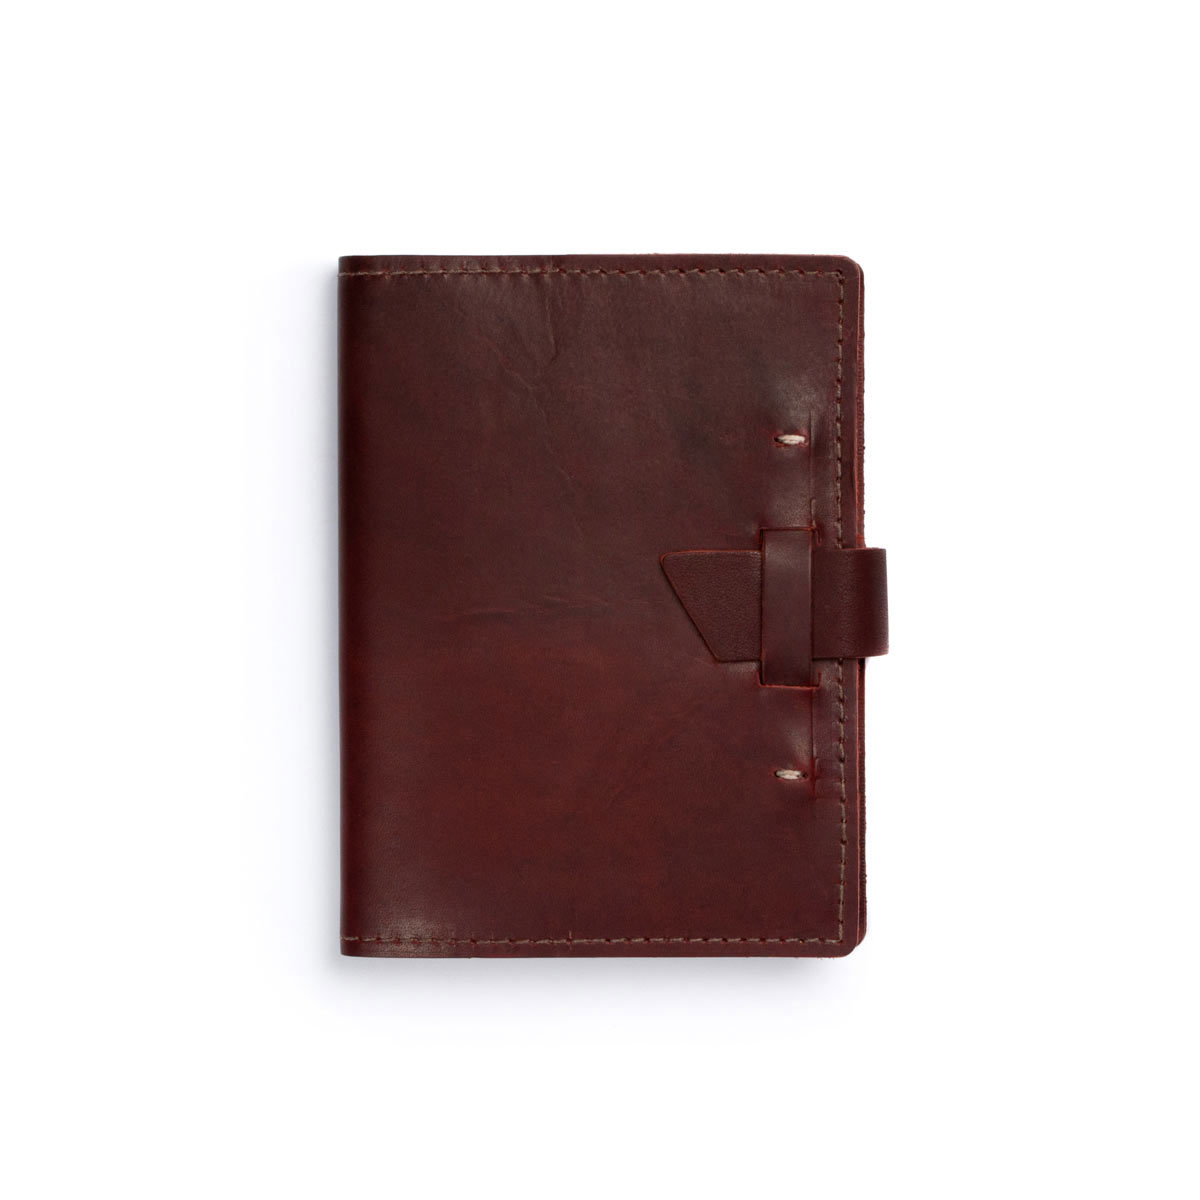 Rustico Wasatch Leather Journals